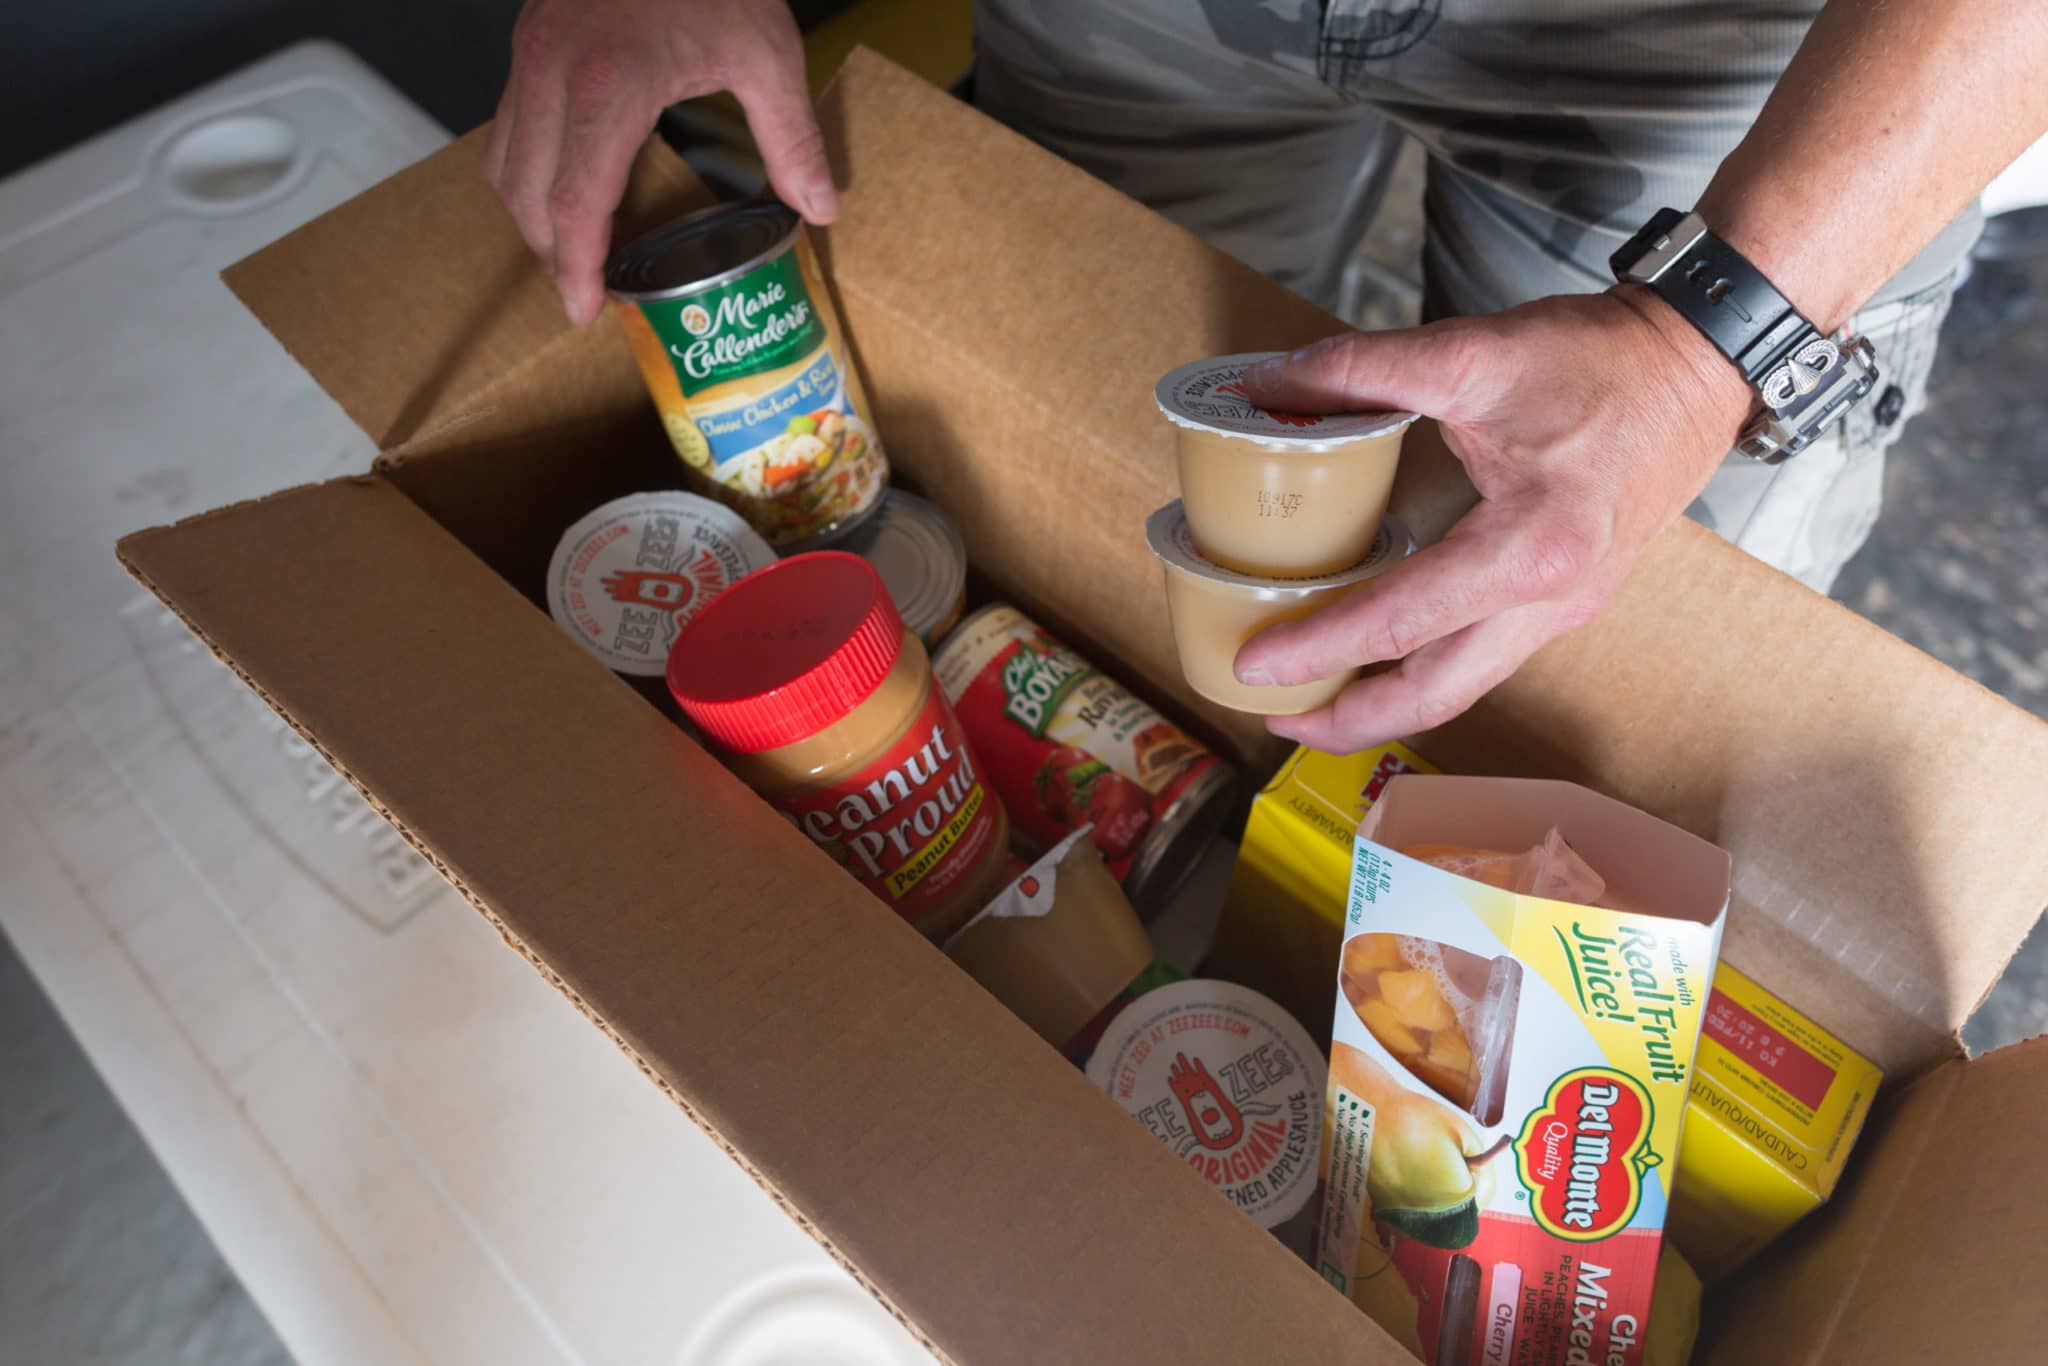 Shelf-Stable-Food-In-Box-Scaled